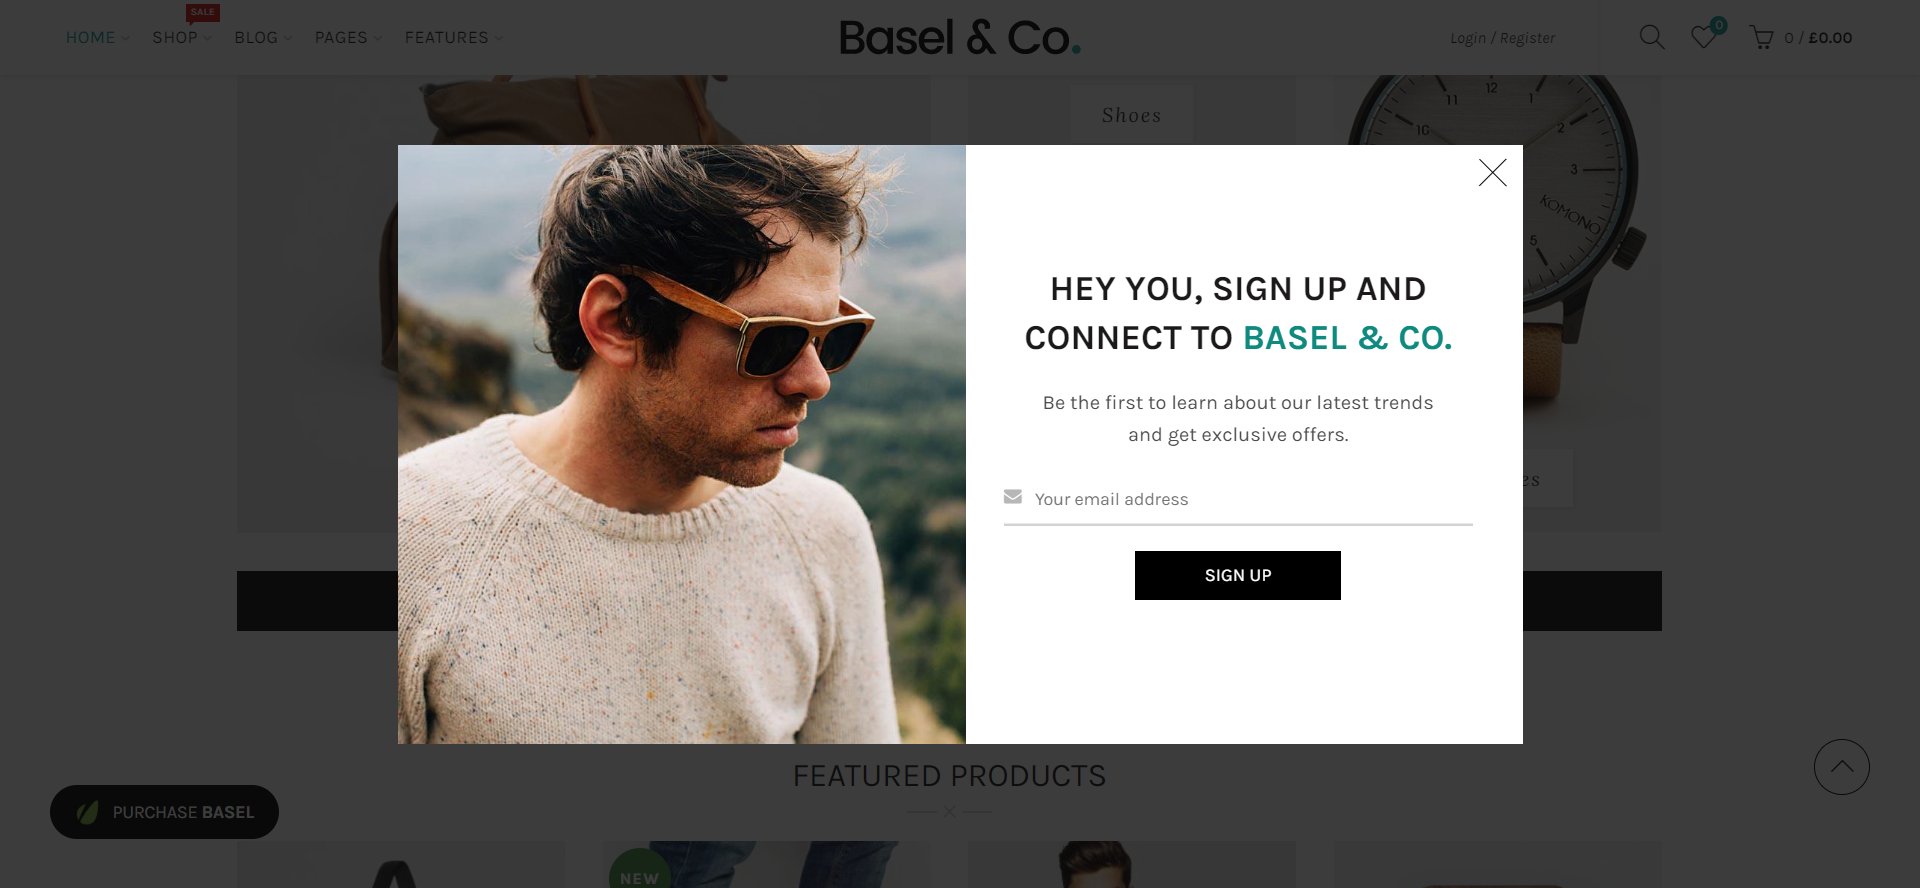 Example of Basel WordPress theme - Newsletter popup form